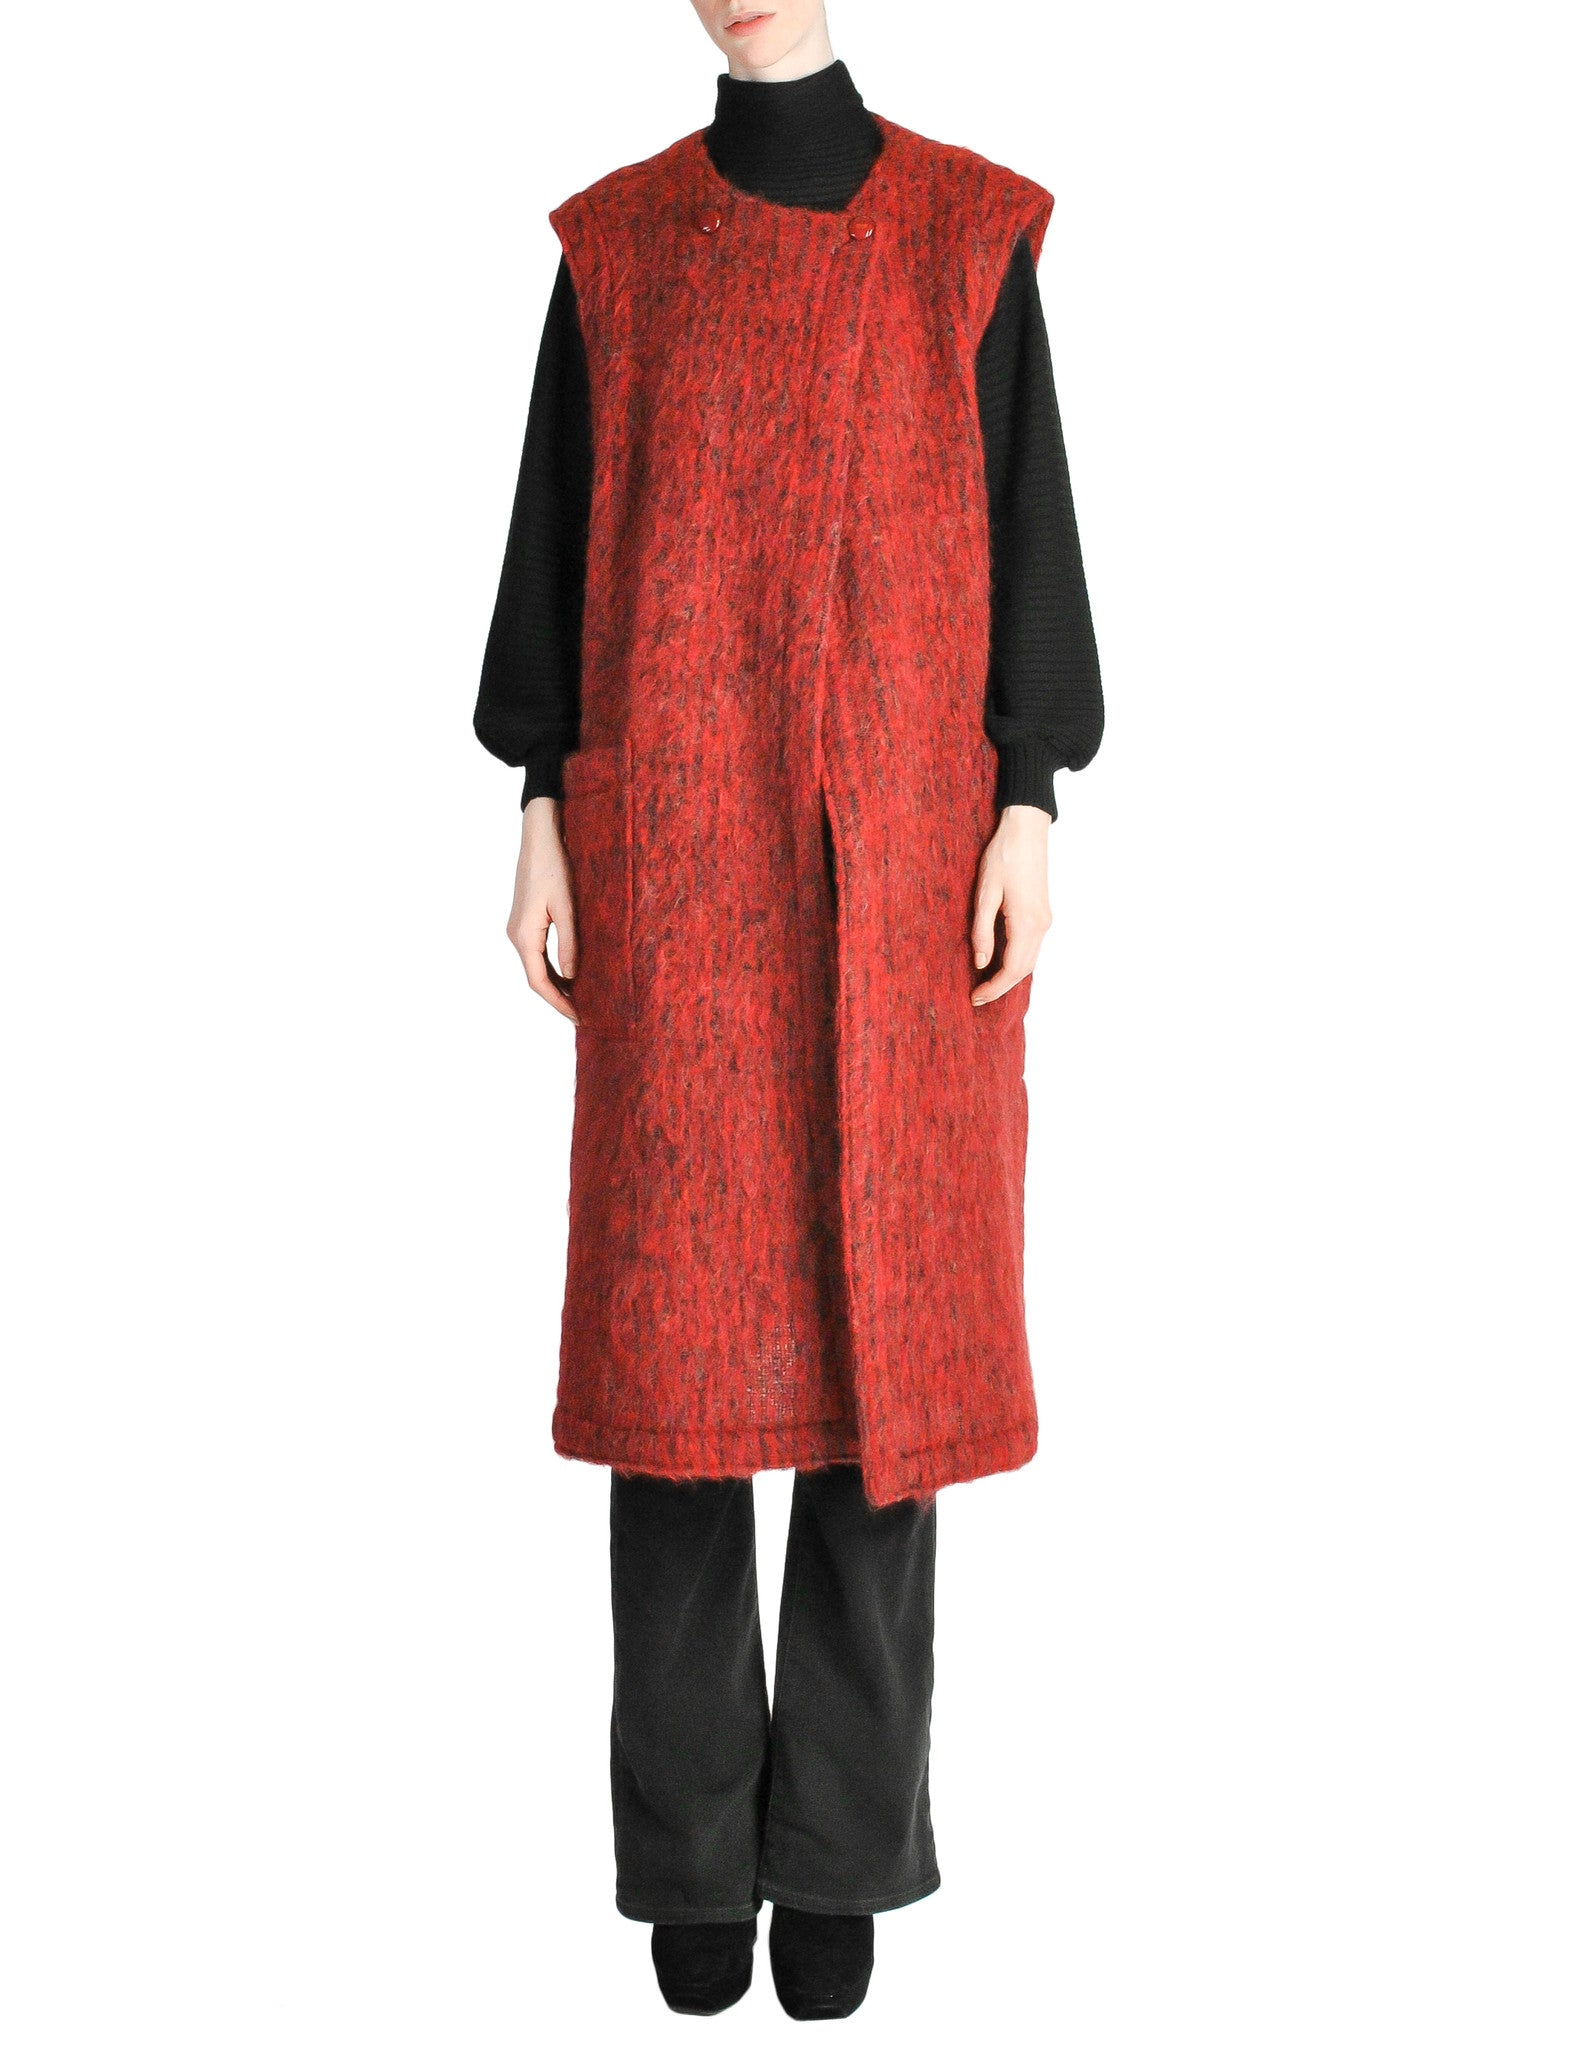 Ted Lapidus Vintage Burnt Red Mohair Maxi Vest - Amarcord Vintage Fashion  - 1